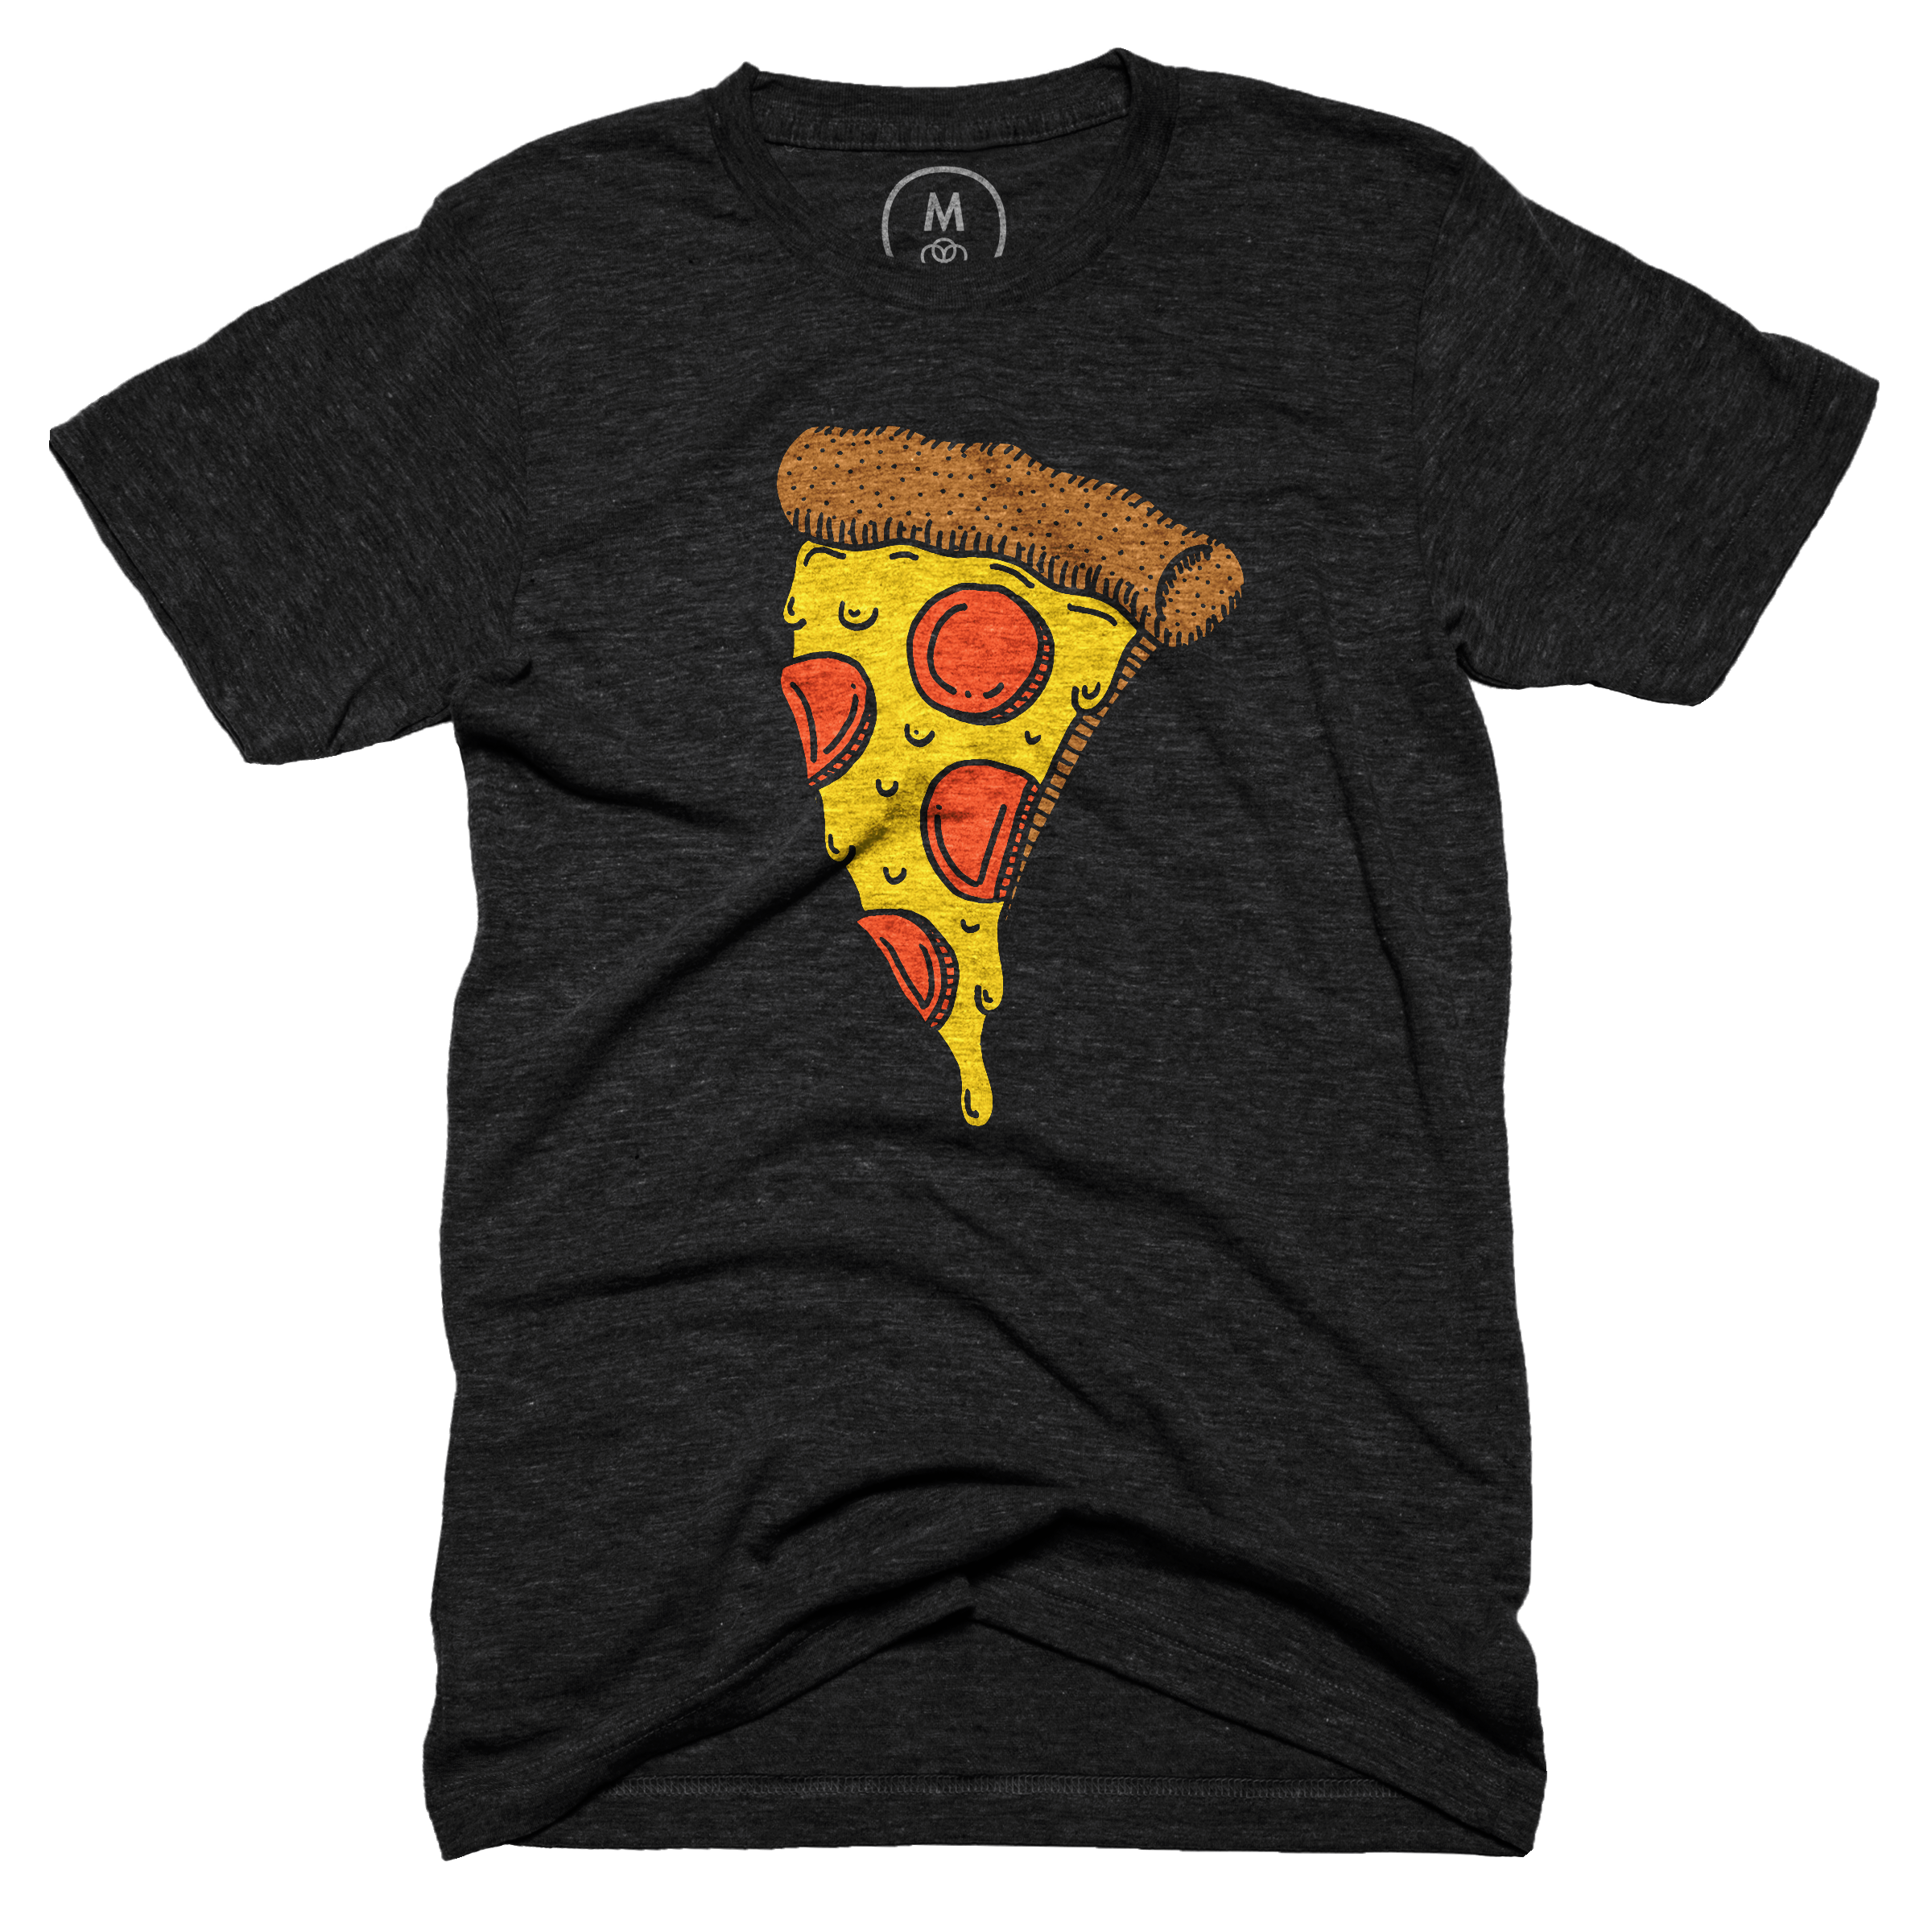 Oh Pizza!